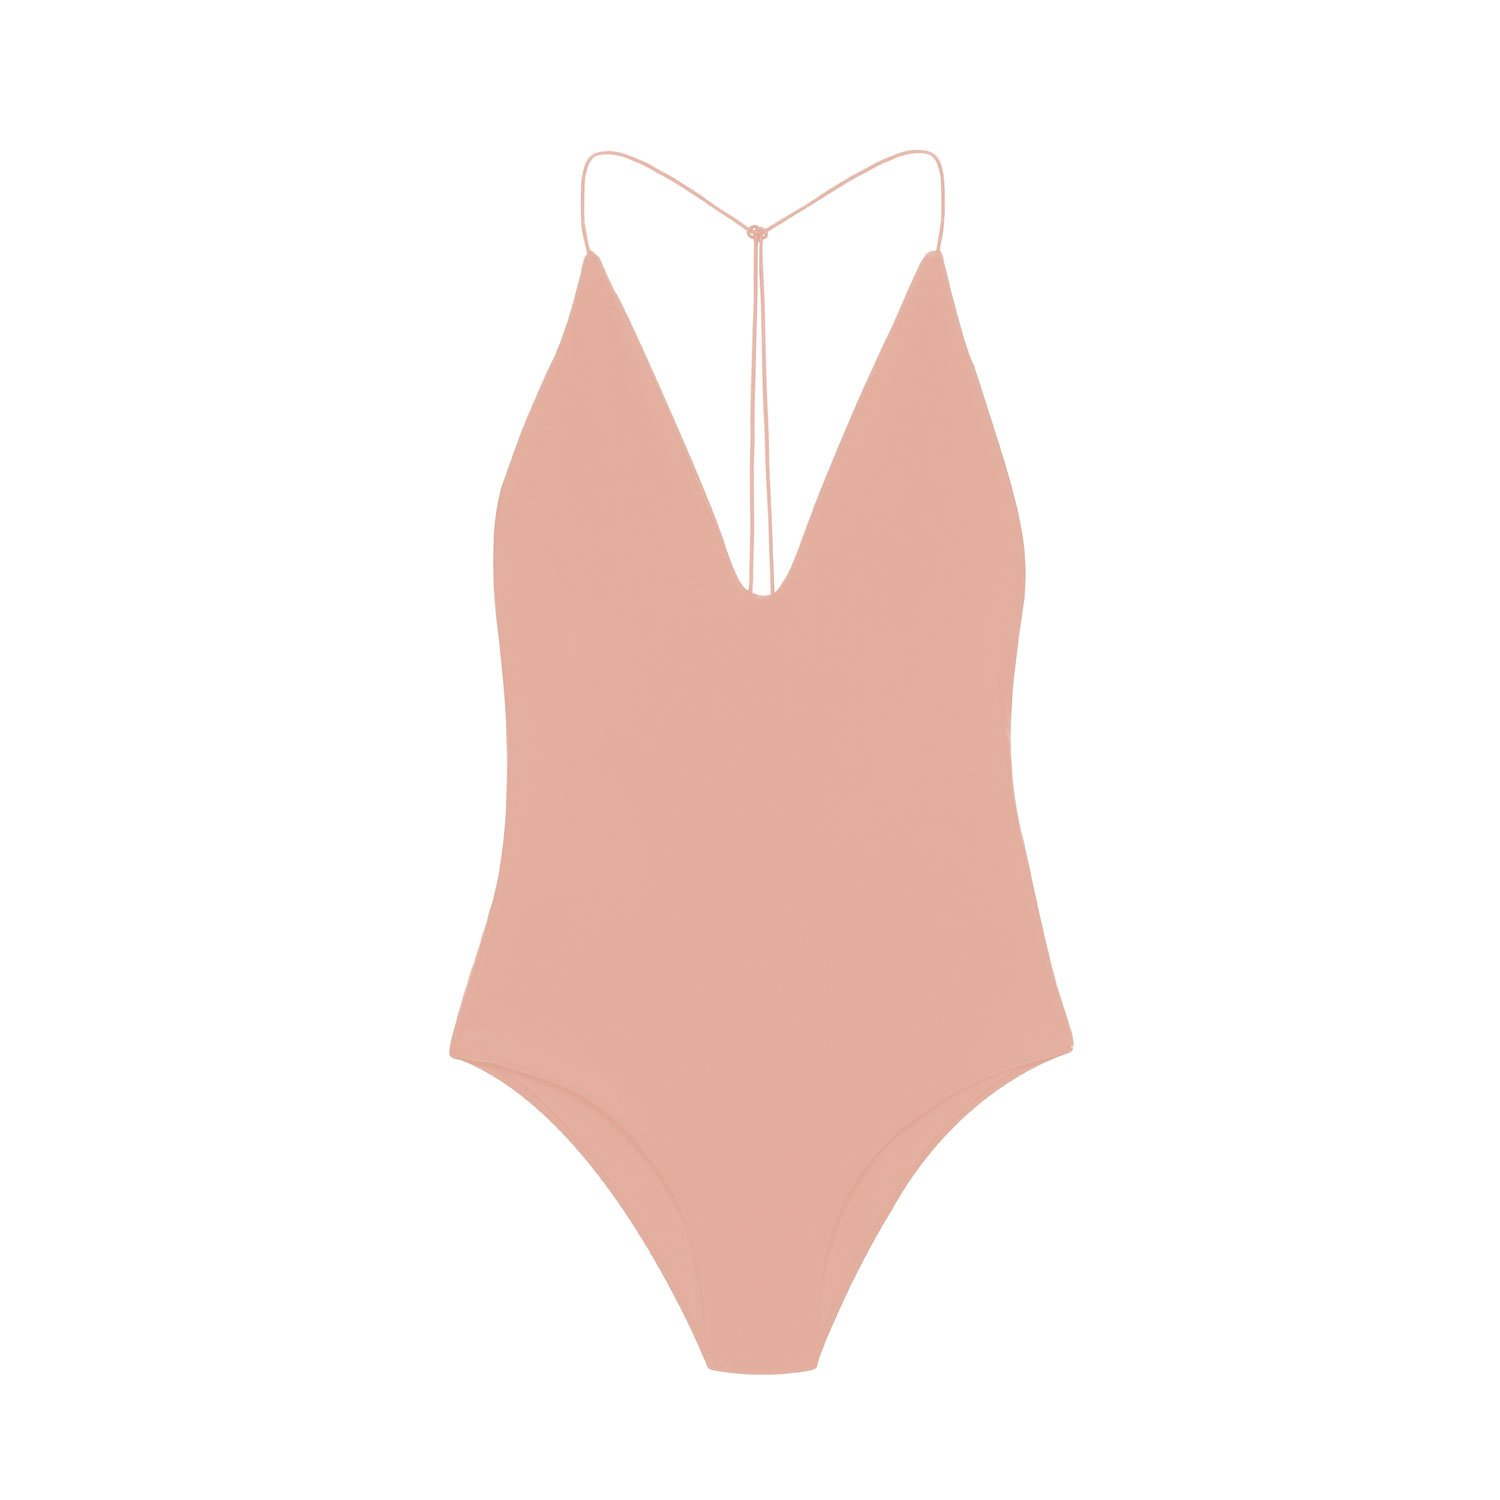 2fdd5c753effb One-Piece Swimsuit Styles - Bathing Suit Trends